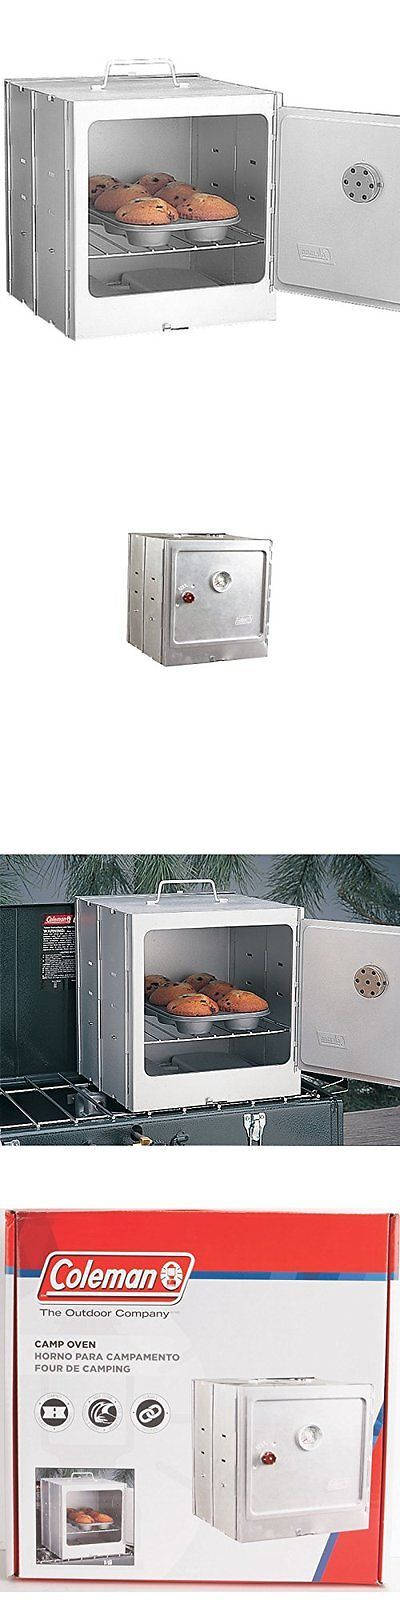 Camping Ovens 181387: Cooking Supplies Muffins Hiking Outdoor Camp Oven Camping Ovens Stoves Bbqs Yard -> BUY IT NOW ONLY: $37.63 on eBay!